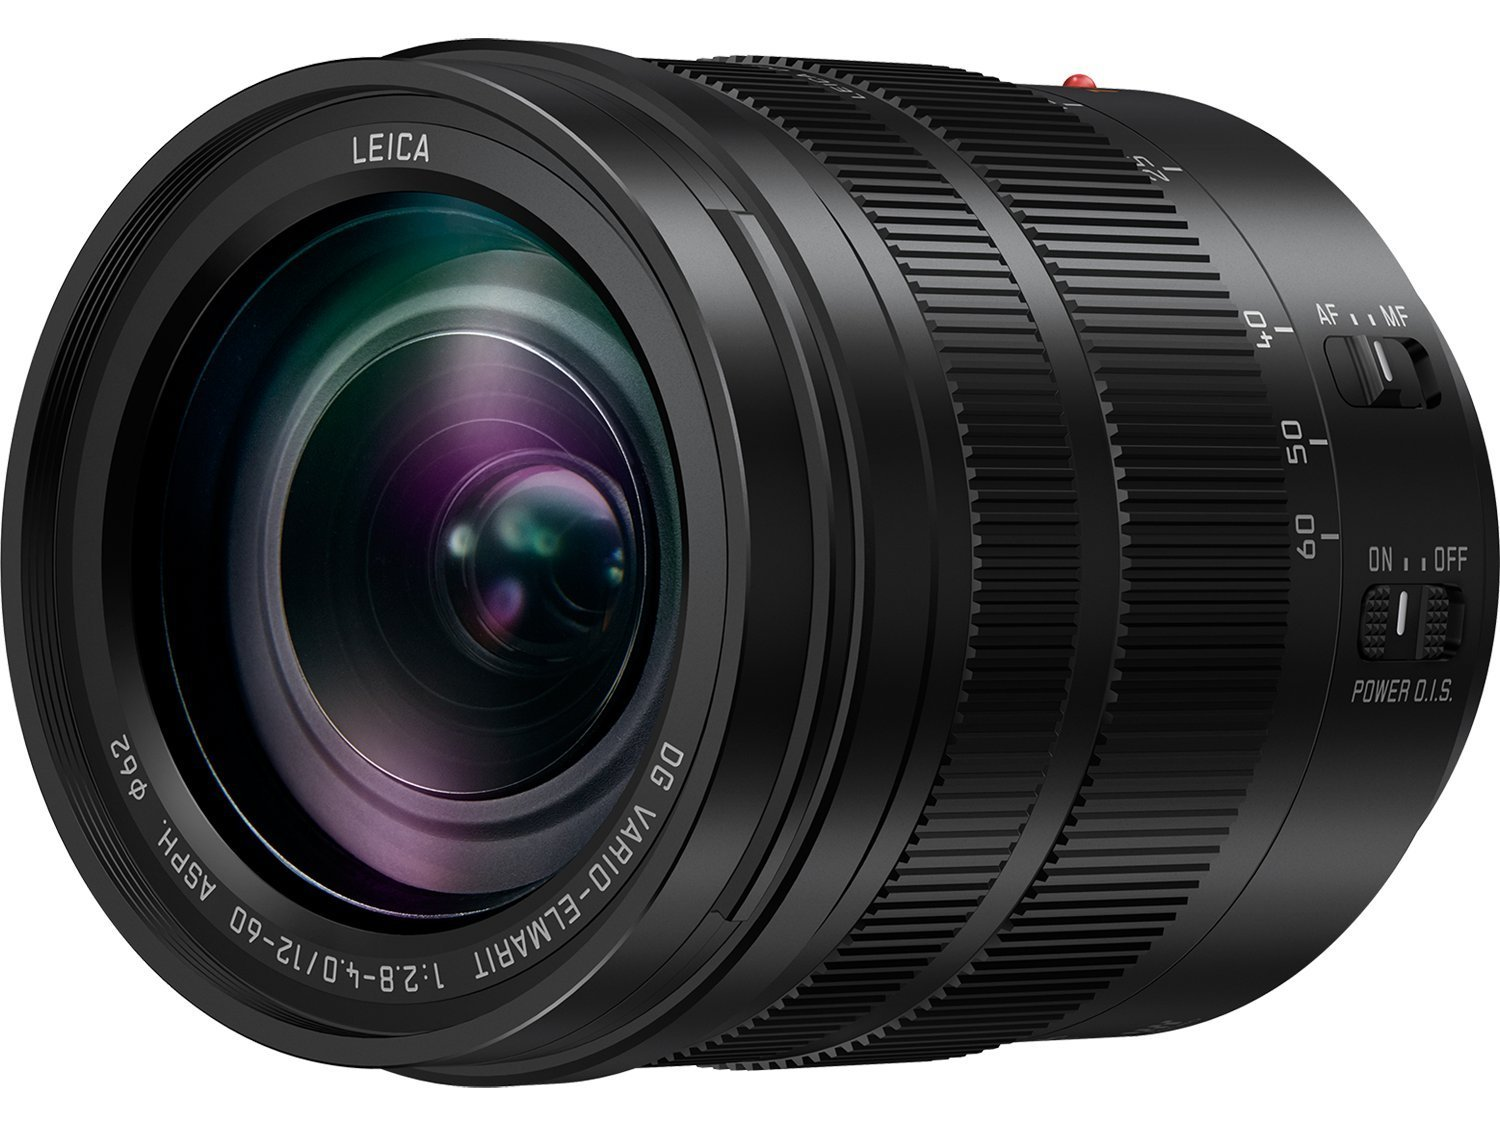 Panasonic Leica 12-60mm Lens Firmware Update Released